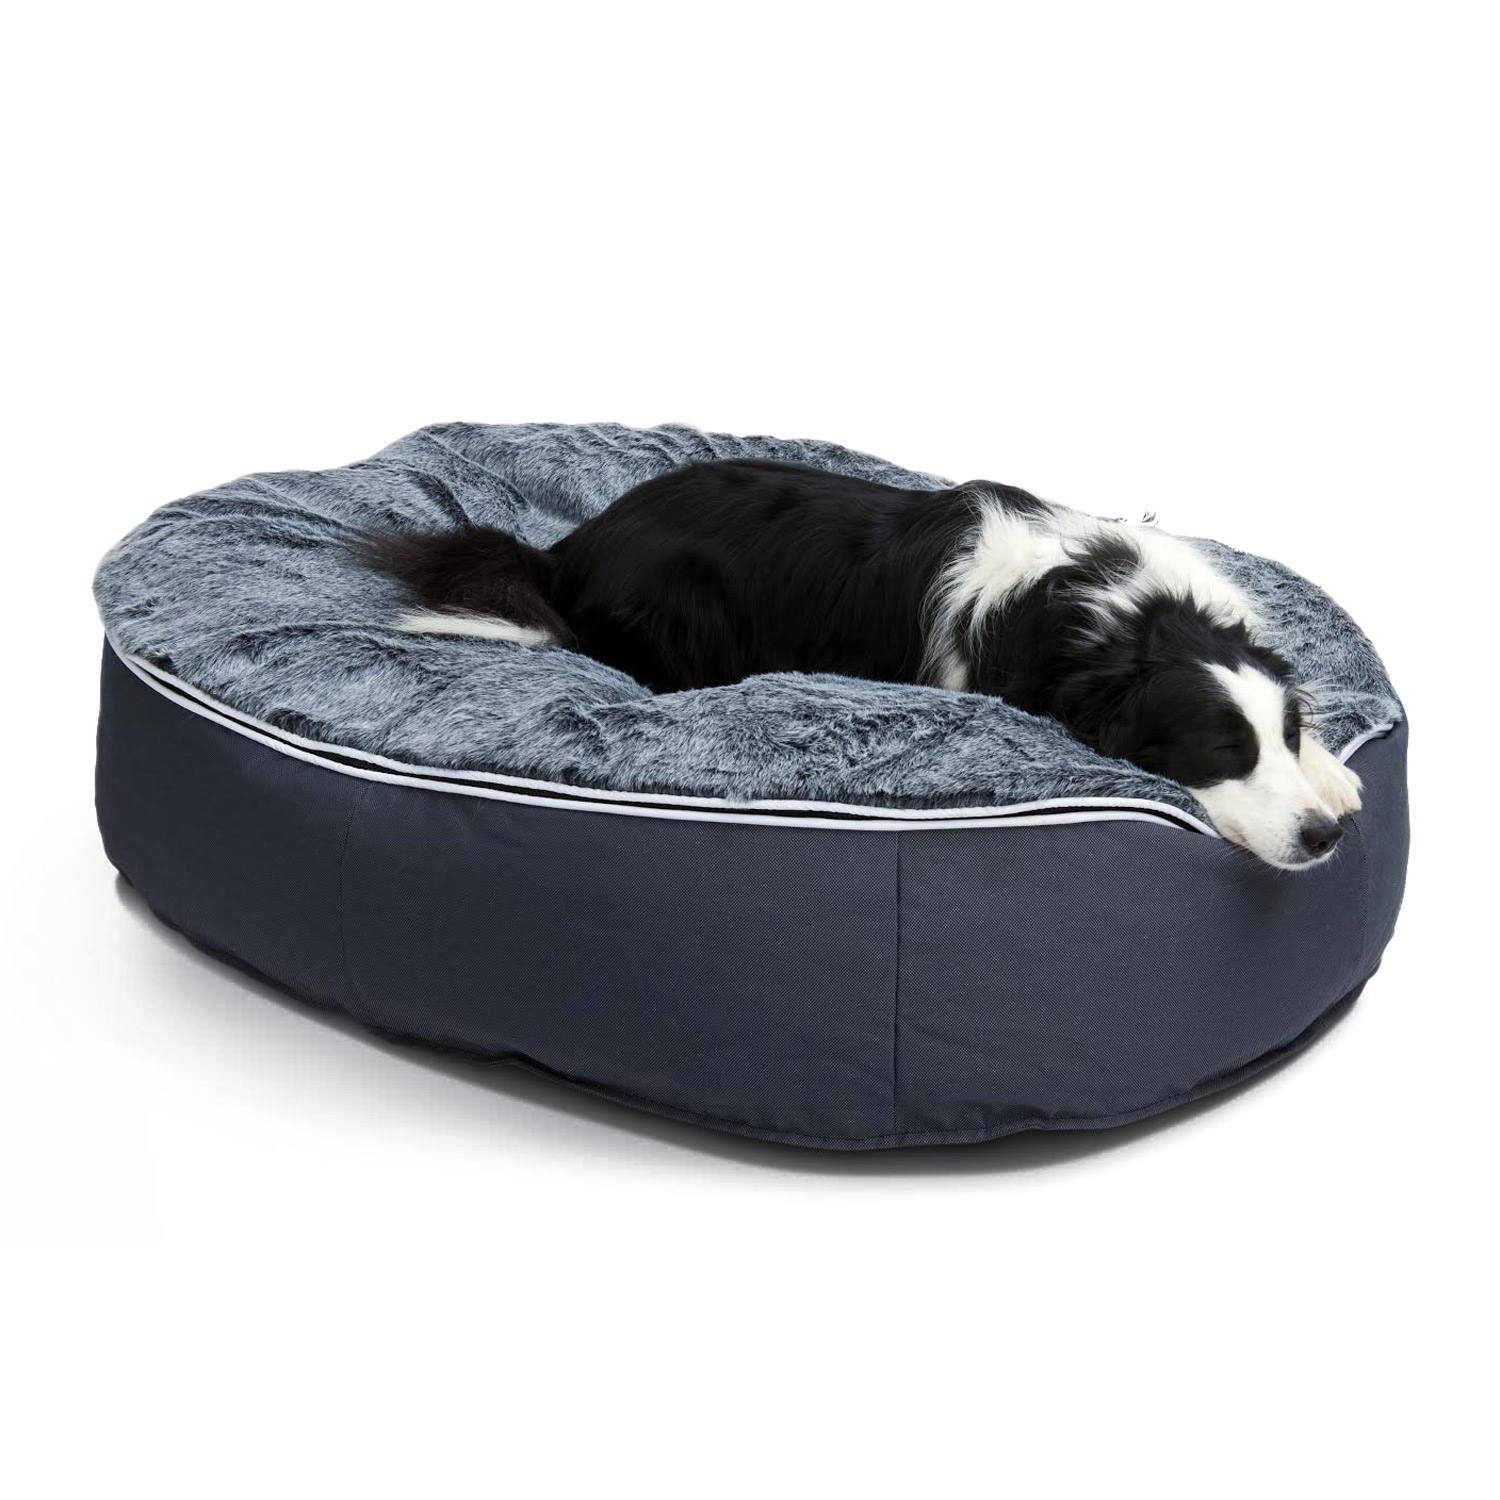 Pet Beds Dog Beds Designer Dog Bean Bags Large Size : petbed white from www.ambientlounge.com.au size 1500 x 1500 jpeg 312kB